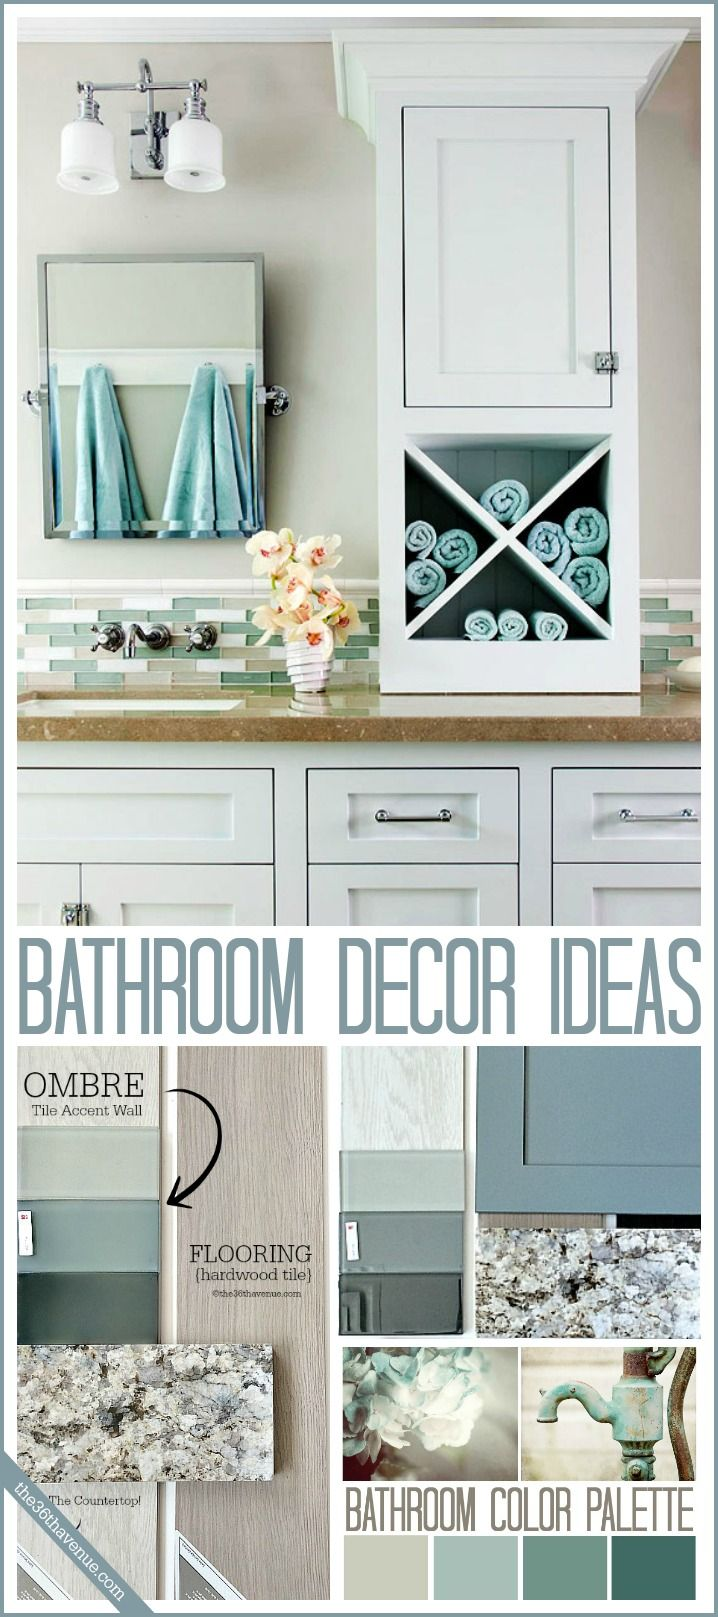 Bathroom Decor Ideas . Mix neutrals with ombre colors is so soothing!